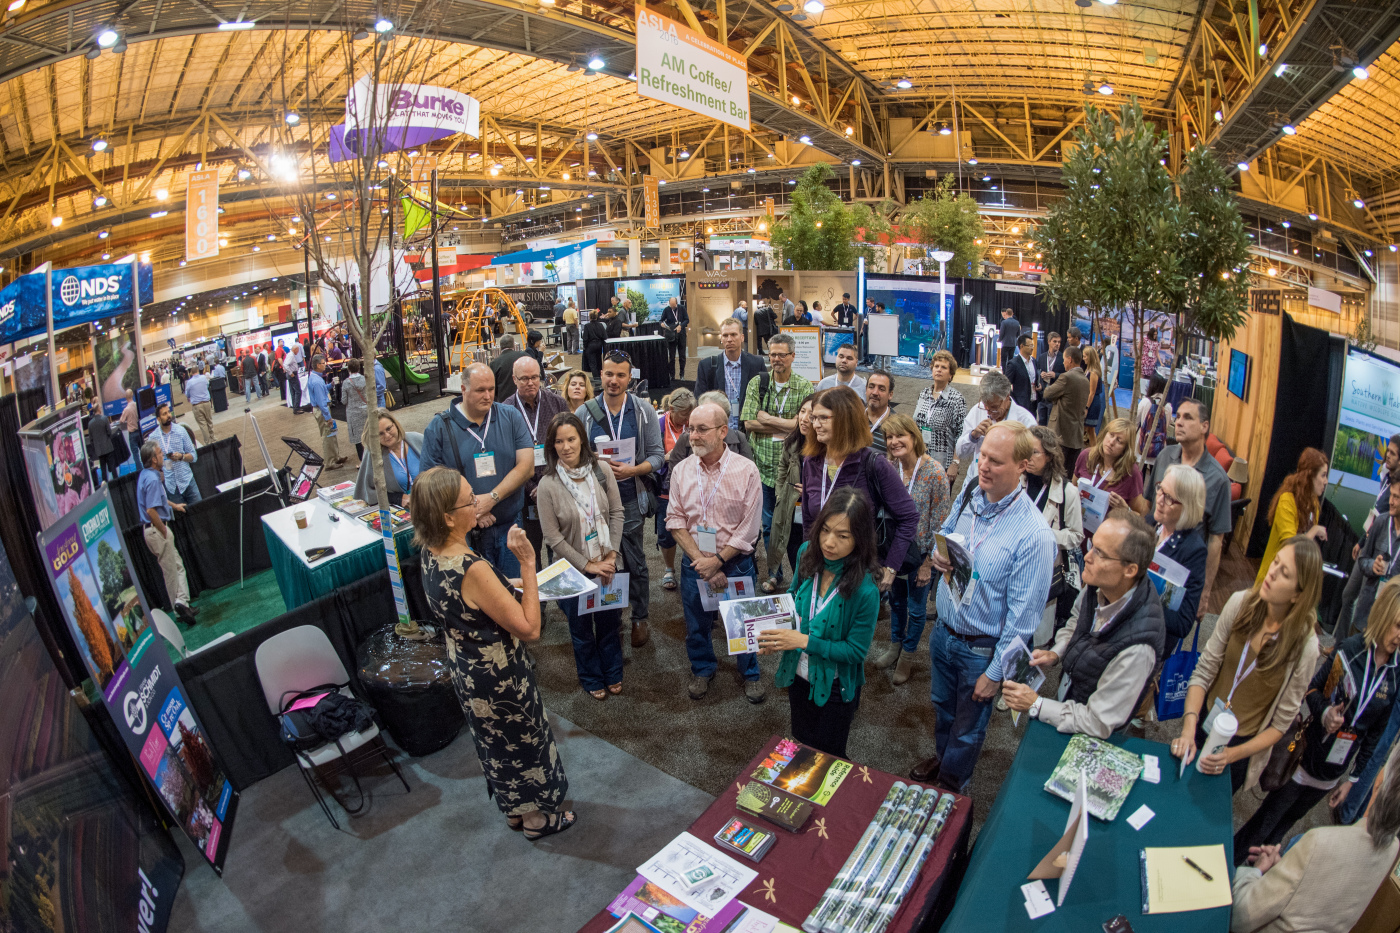 10 Reasons to Attend the ASLA 2017 Annual Meeting & EXPO - Land8